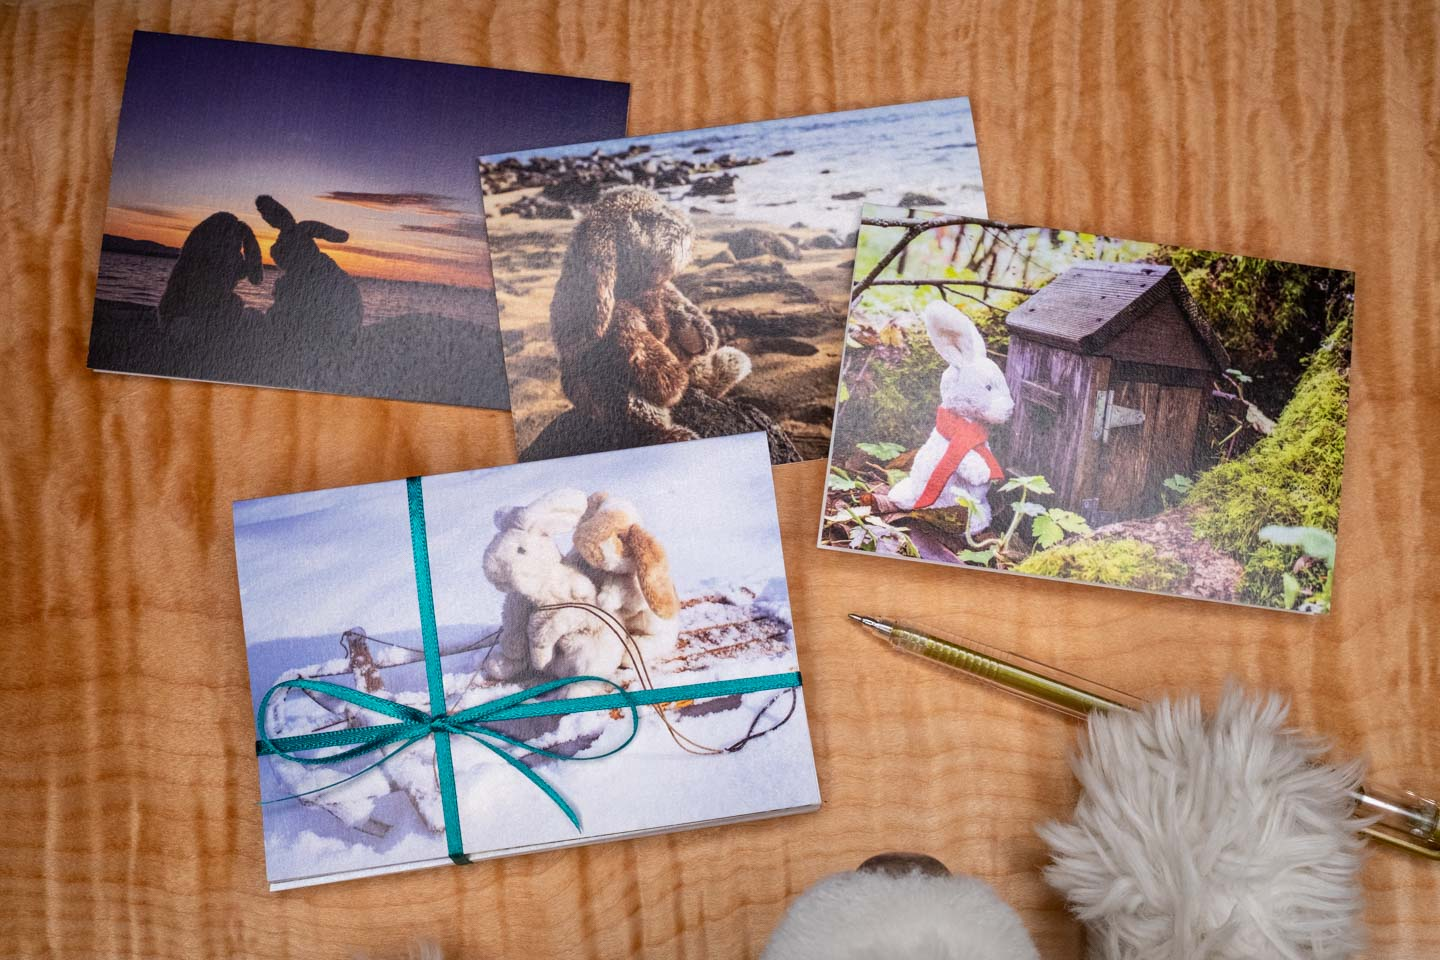 Set of notecards with four different images featuring stuffed bunnies